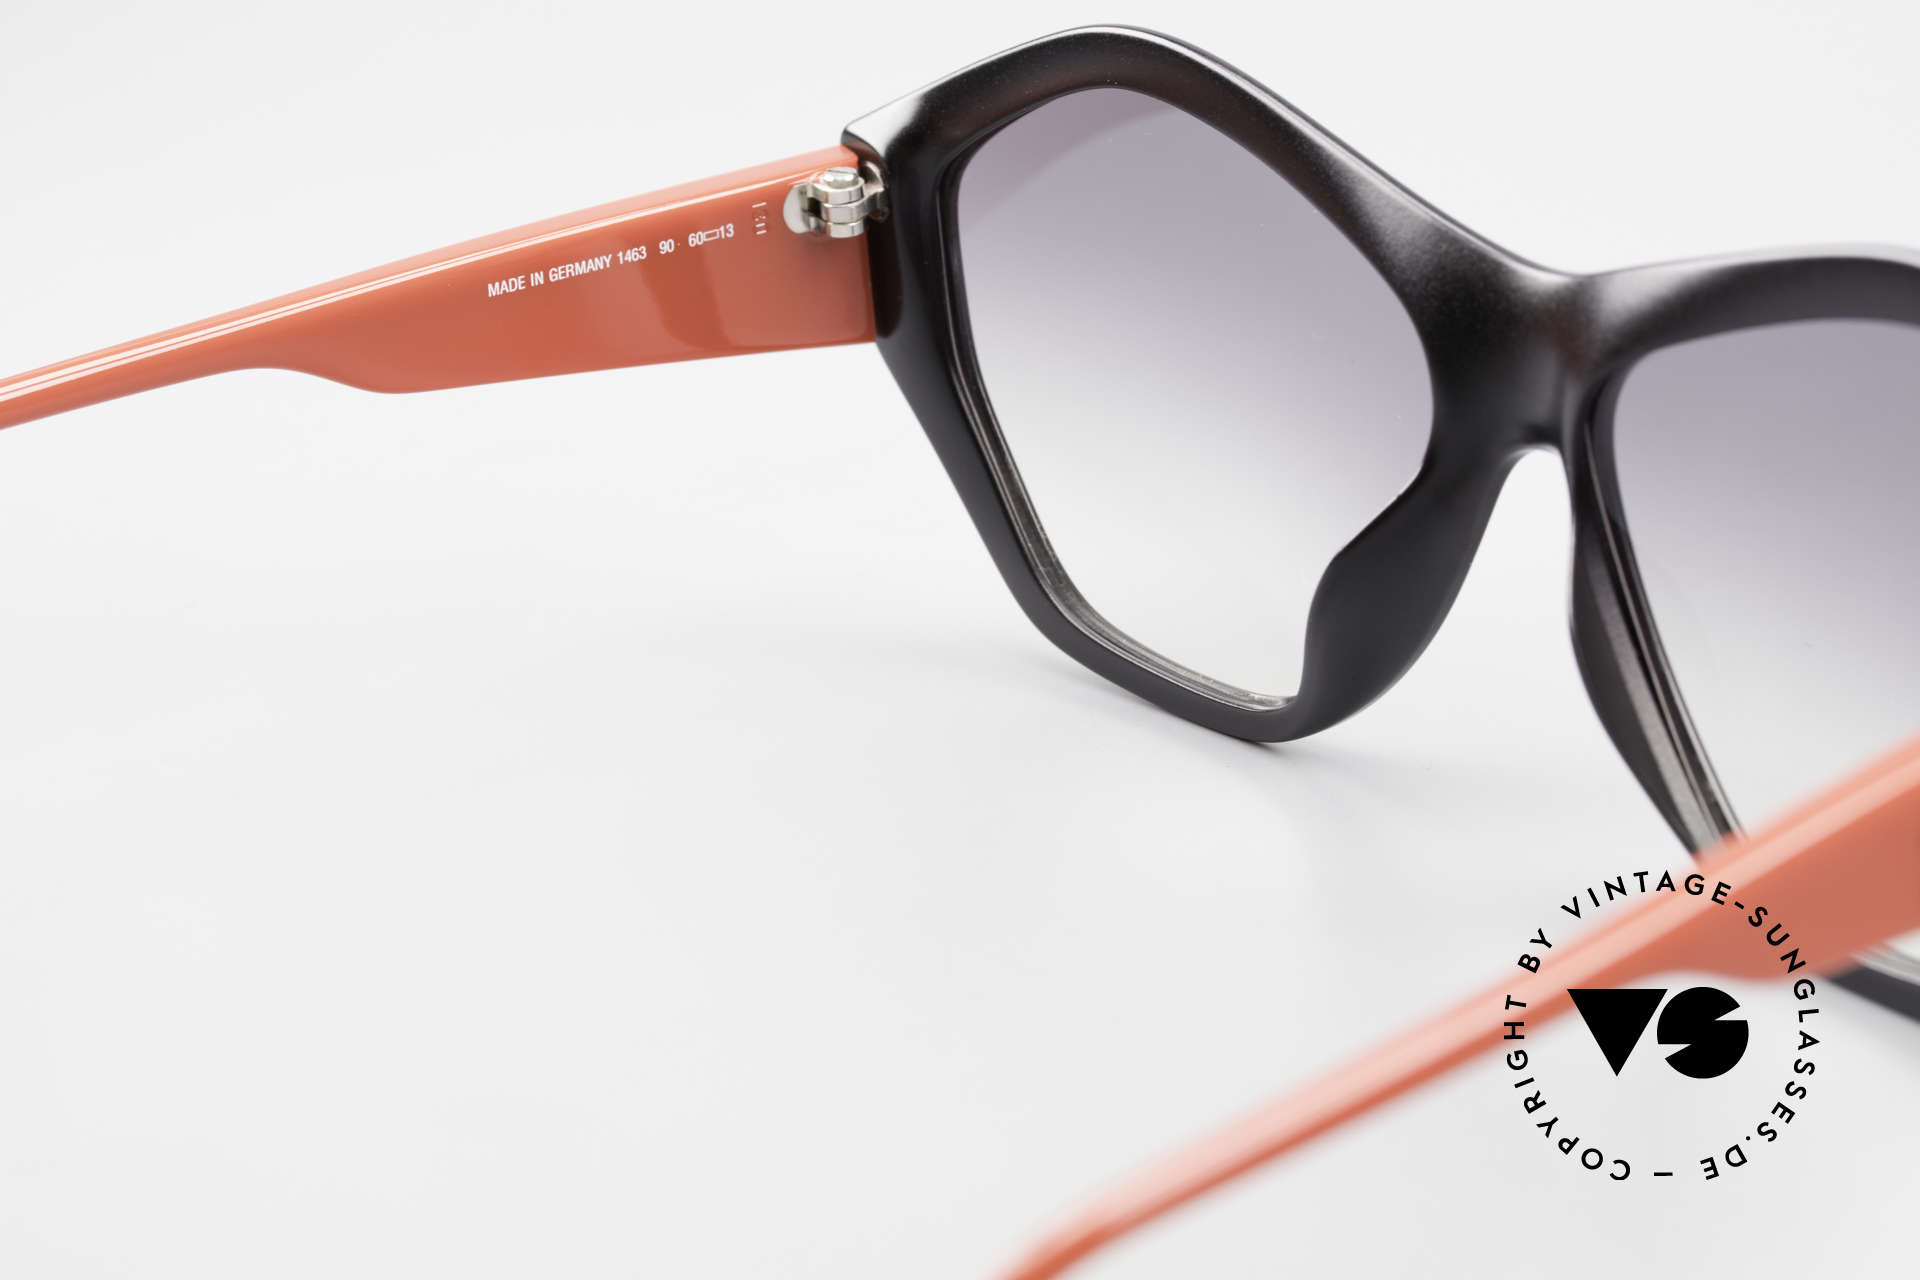 Paloma Picasso 1463 Ladies Sunglasses 90's Optyl, of course never worn (as all our old 90's treasures), Made for Women